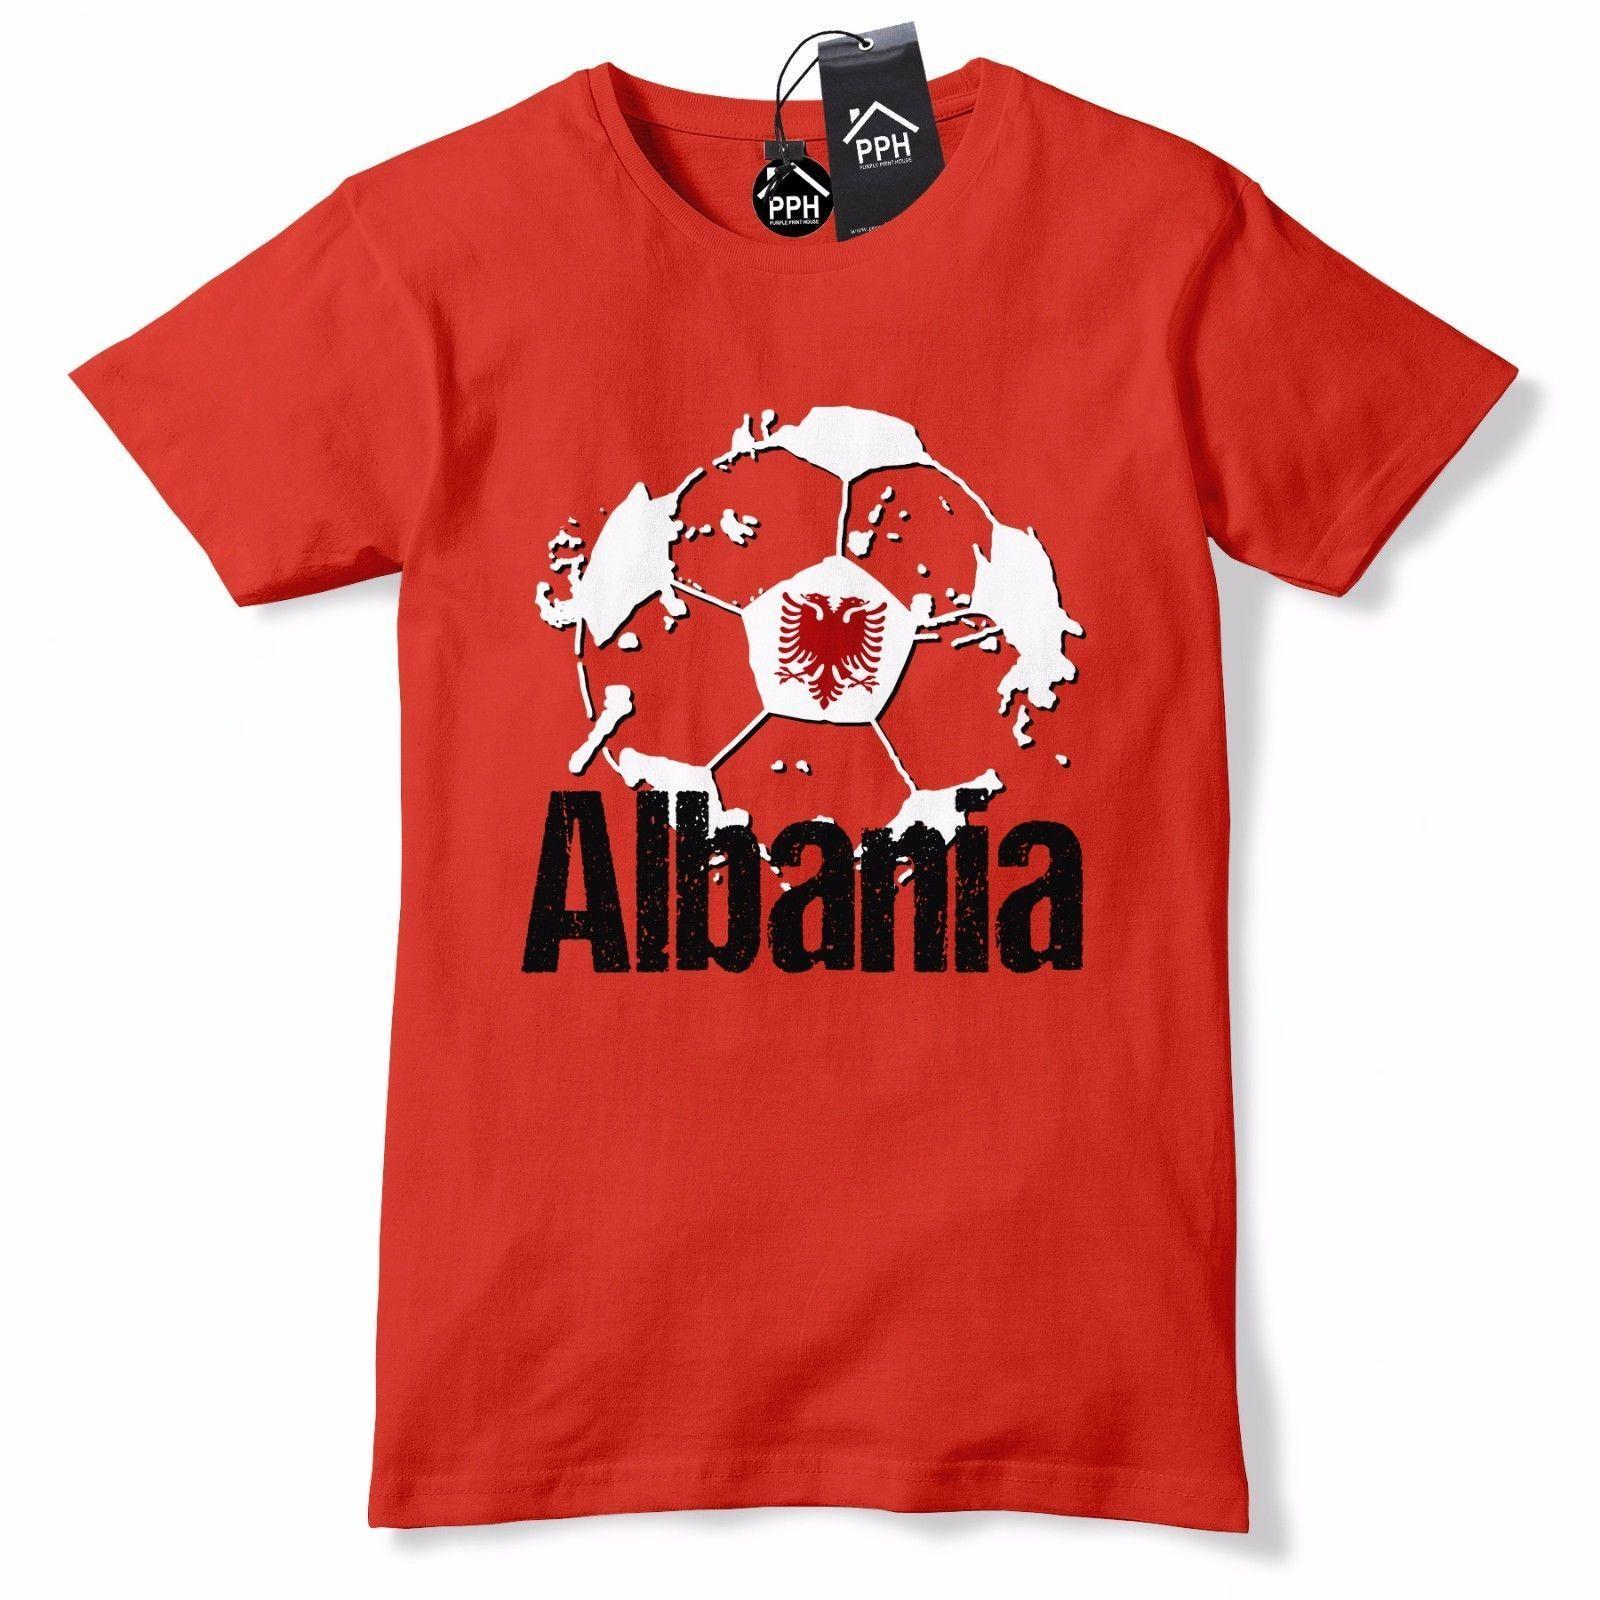 cb4a52d82 Red And Black Football Shirts - Ortsplanungsrevision Stadt Thun